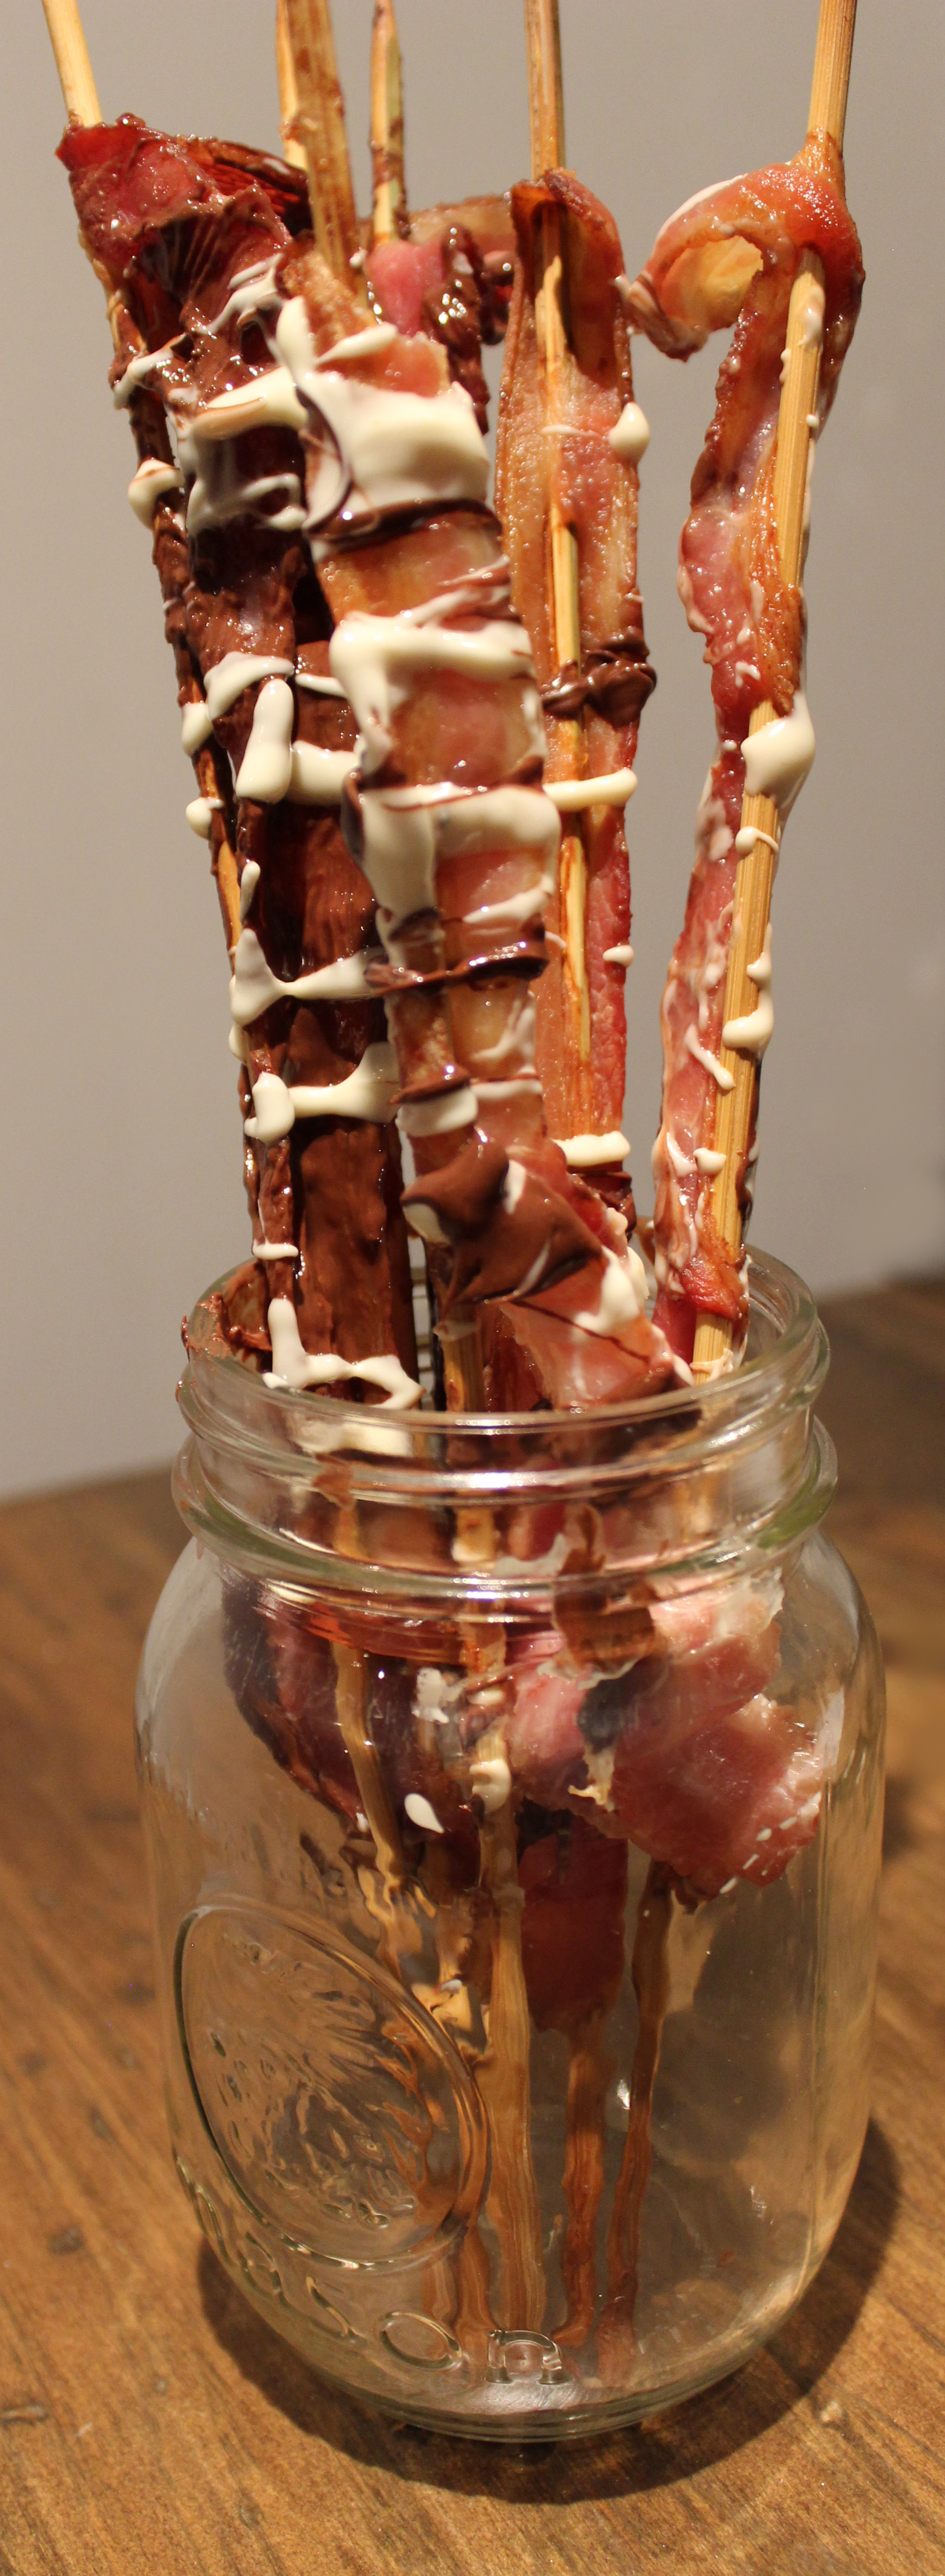 Chocolate Covered Bacon.